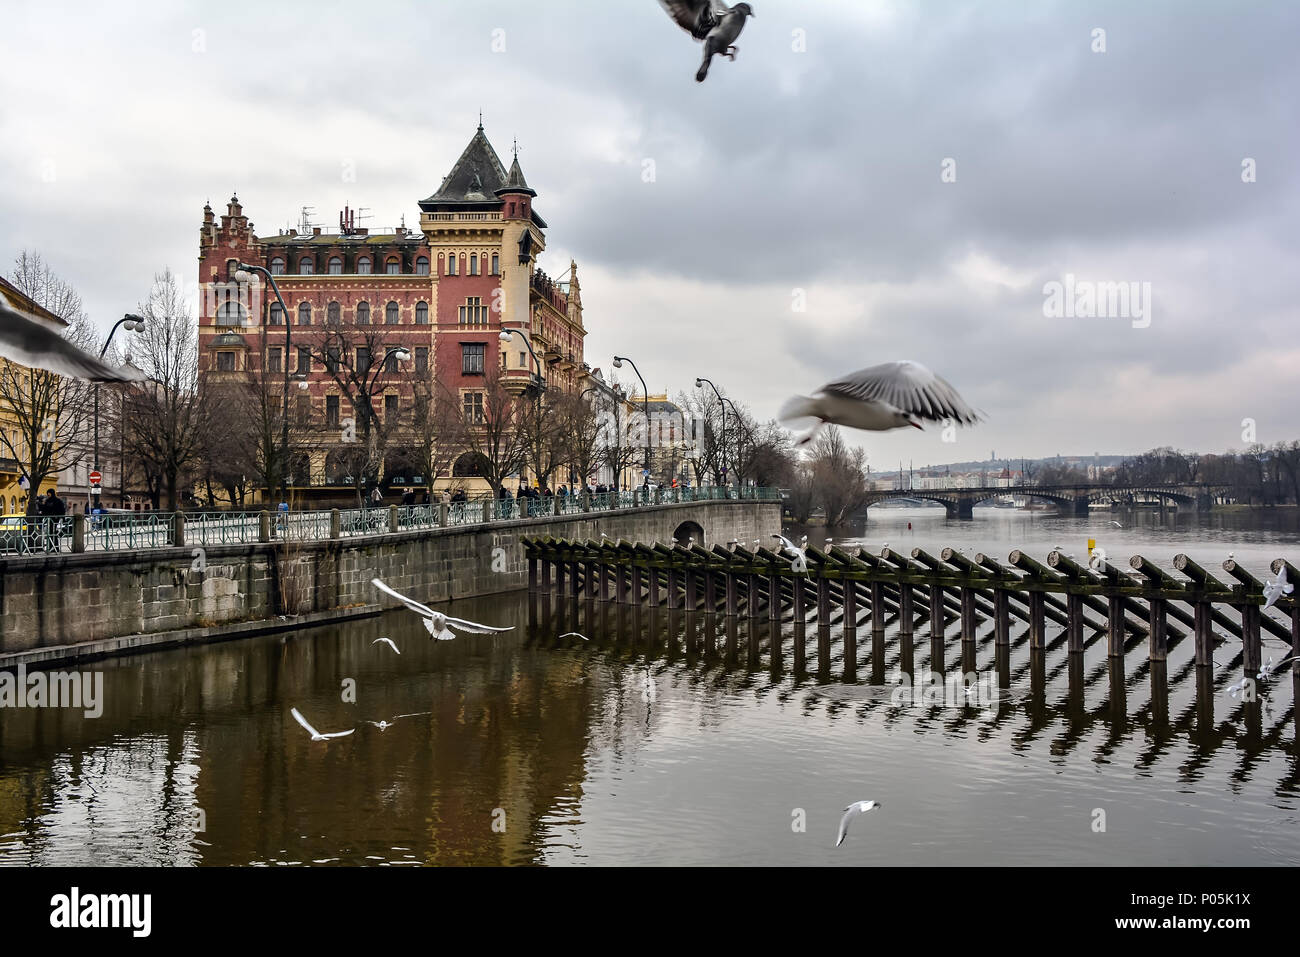 Seagulls flying over the Vltava river in Prague with the red the Dutch Renaissance style building named Bellevue  ('beautiful view') house. - Stock Image